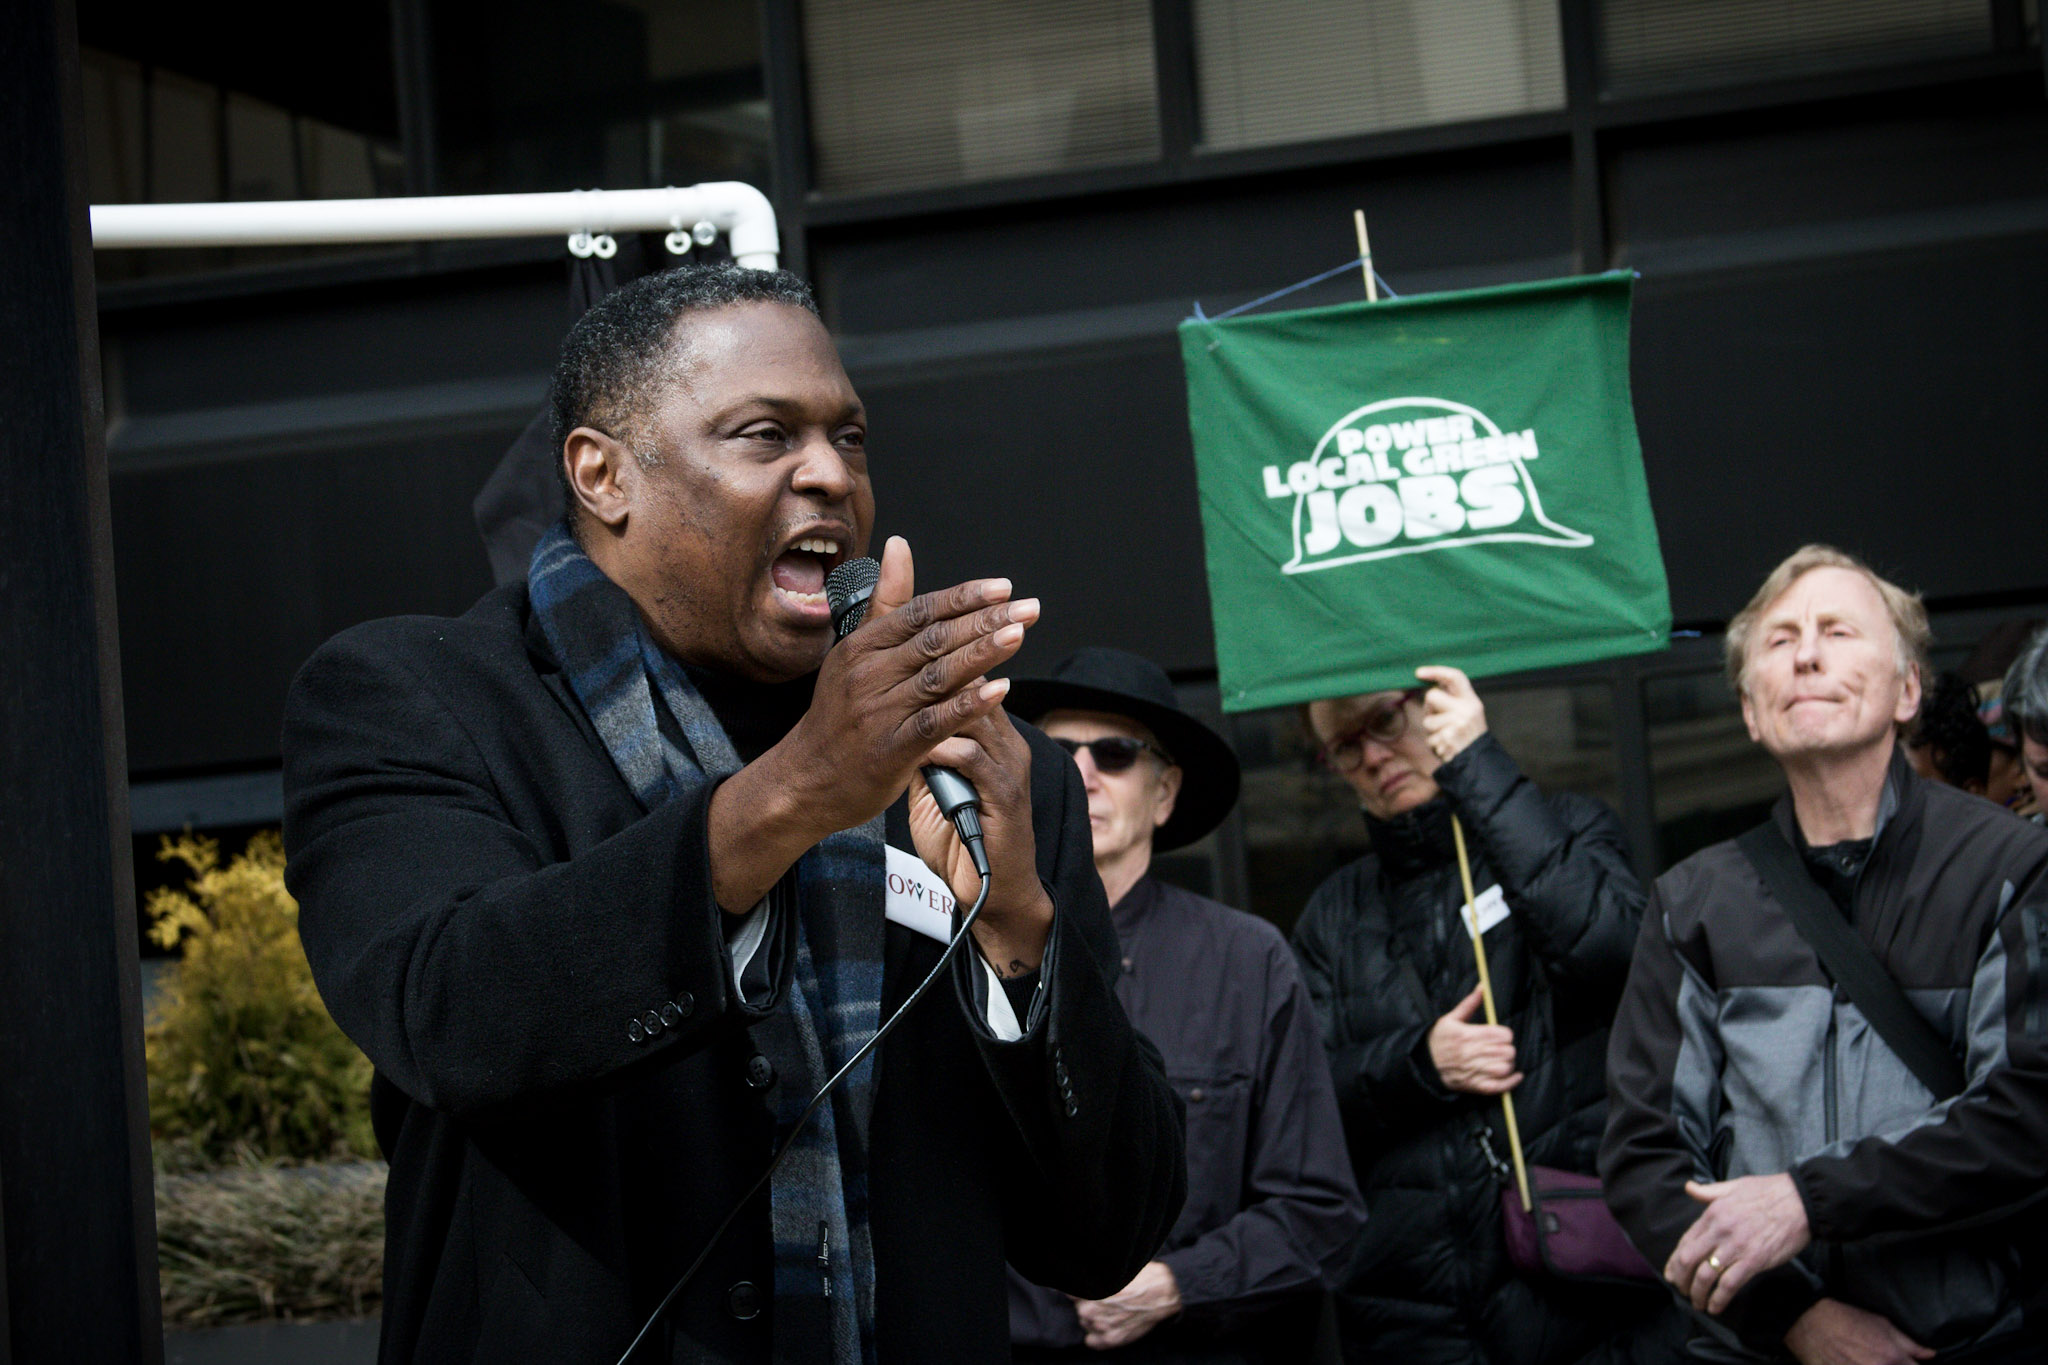 Rev. Holston of POWER speaks at the Day of Mourning. Photo by Rachael Warriner.